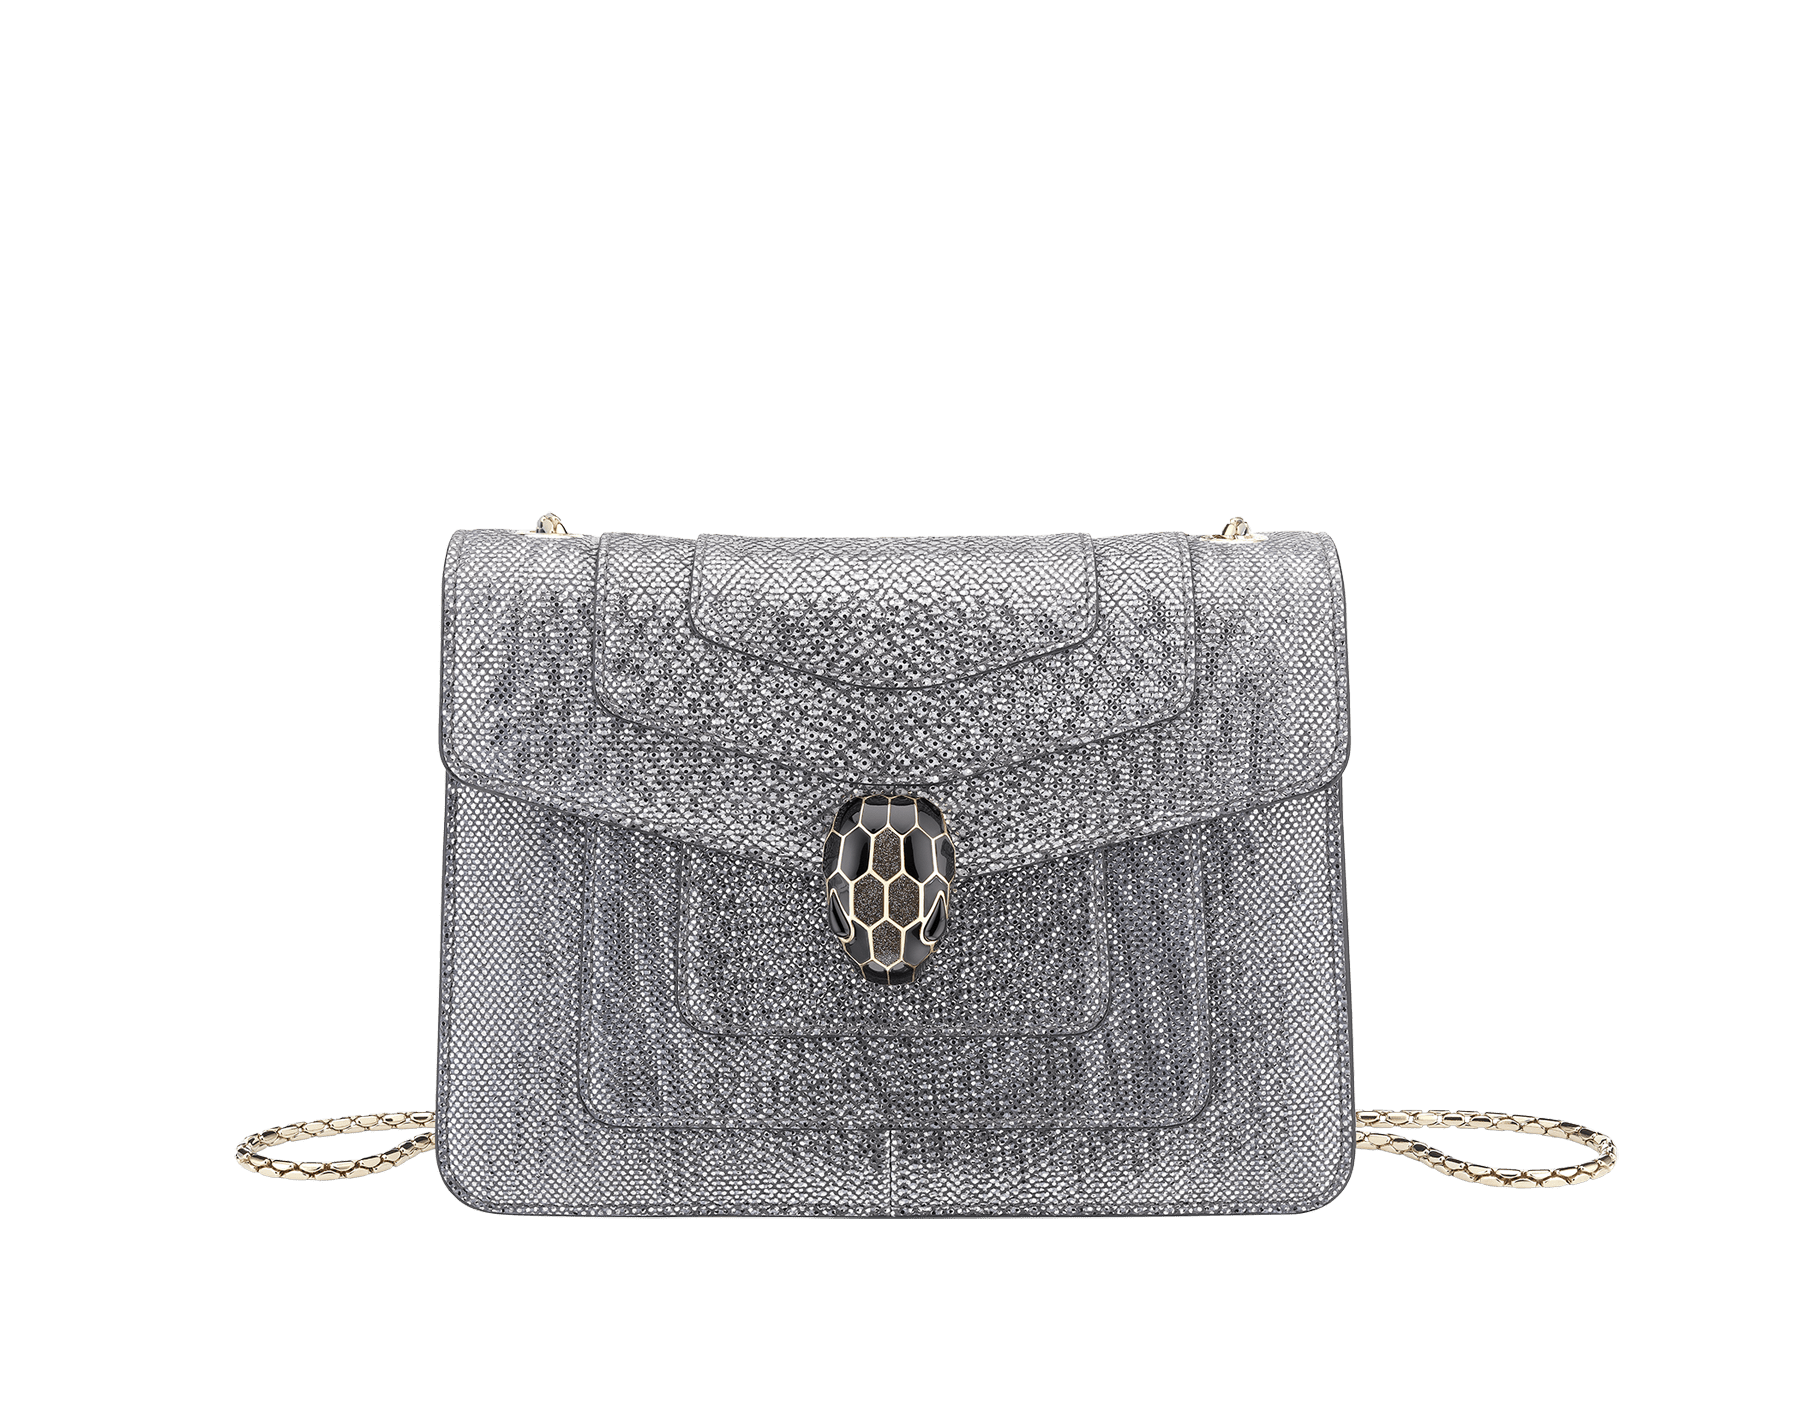 Serpenti Forever crossbody bag in charcoal diamond metallic karung skin. Snakehead closure in light gold plated brass decorated with glitter charcoal diamond and shiny black enamel, and black onyx eyes. 287939 image 1